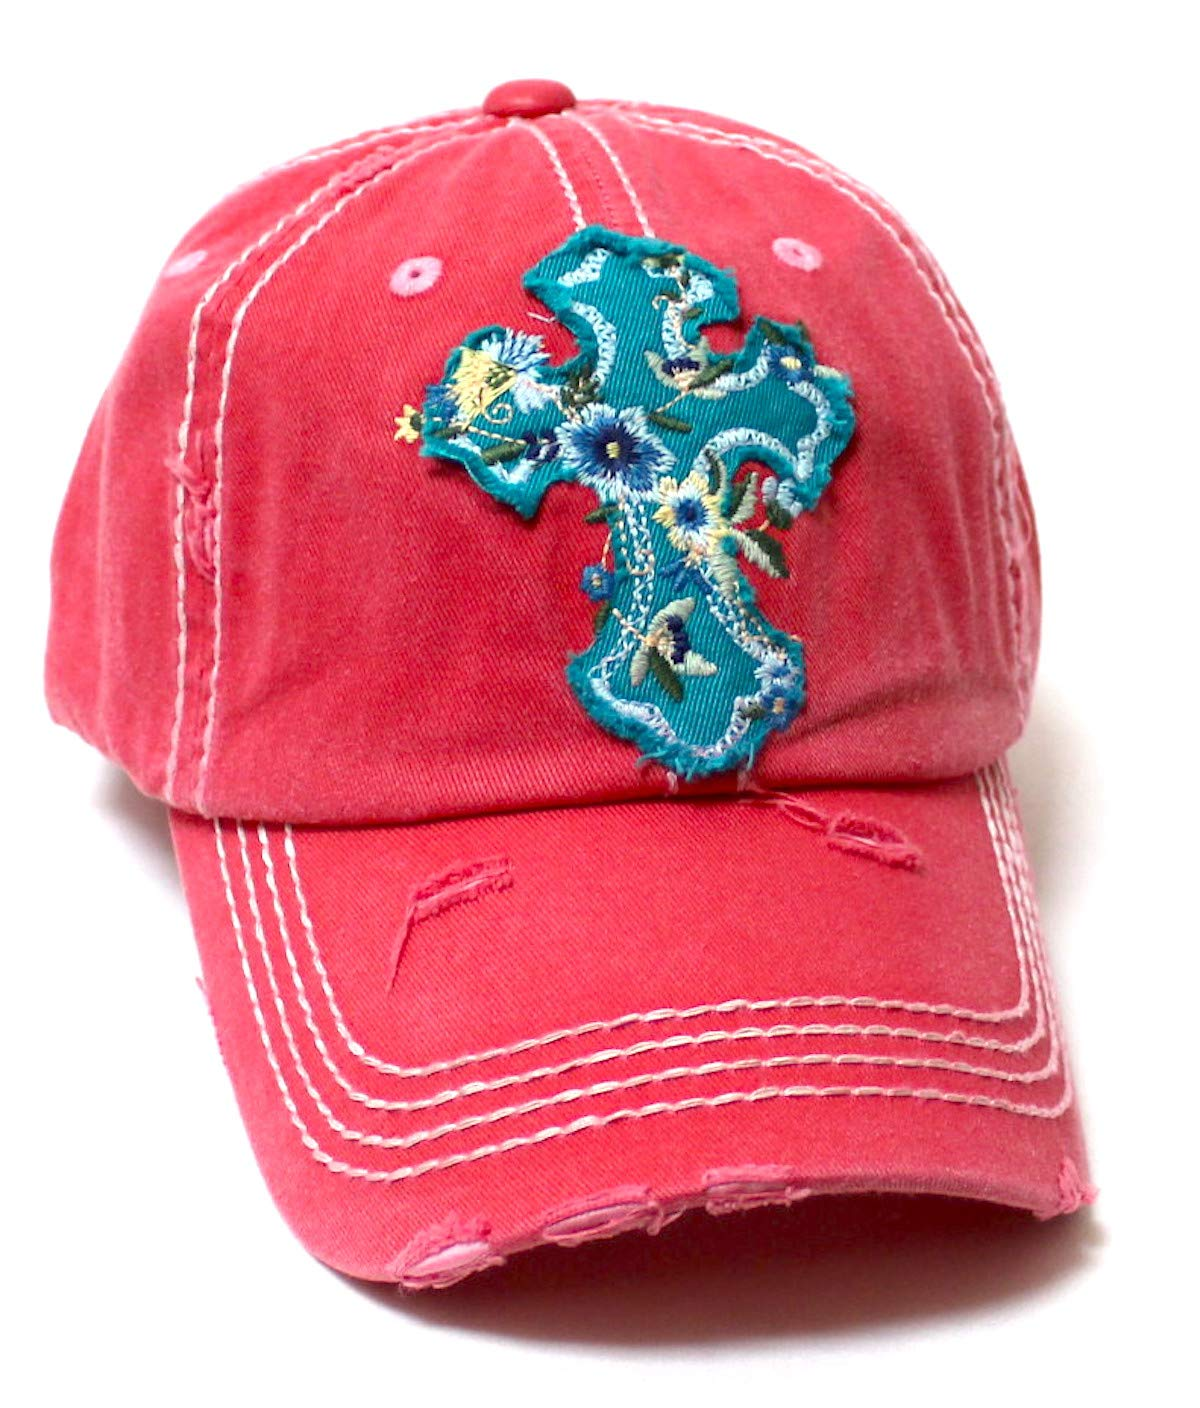 Women's Baseball Cap Romantic Floral Cross Embroidery Patch Monogram Adjustable Hat, Rose Pink